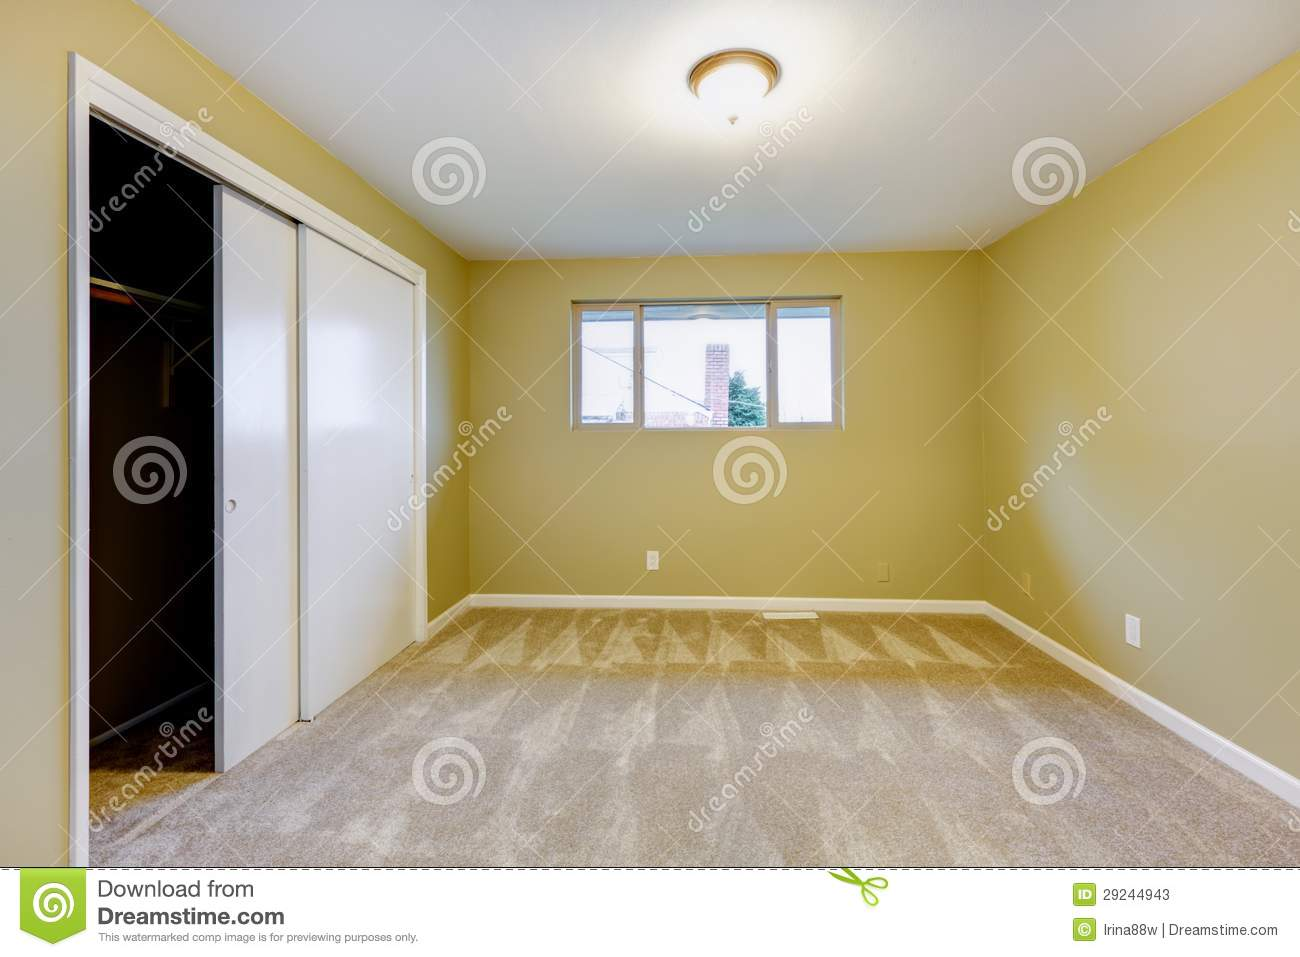 Empty New Bedroom With Green Walls Interior. Stock Image - Image of ...